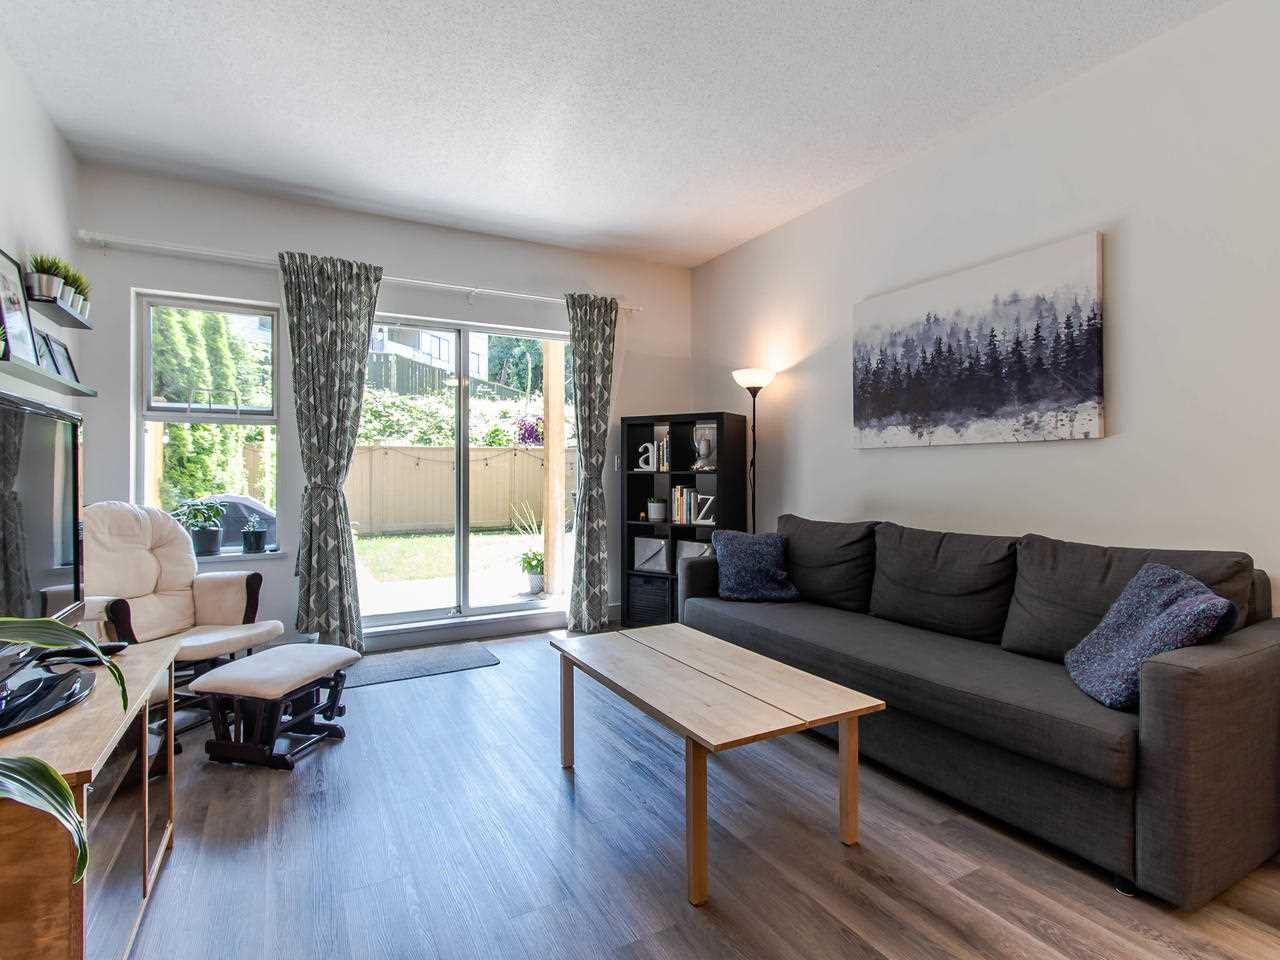 "Main Photo: 23 730 FARROW Street in Coquitlam: Coquitlam West Townhouse for sale in ""FARROW RIDGE"" : MLS®# R2475637"